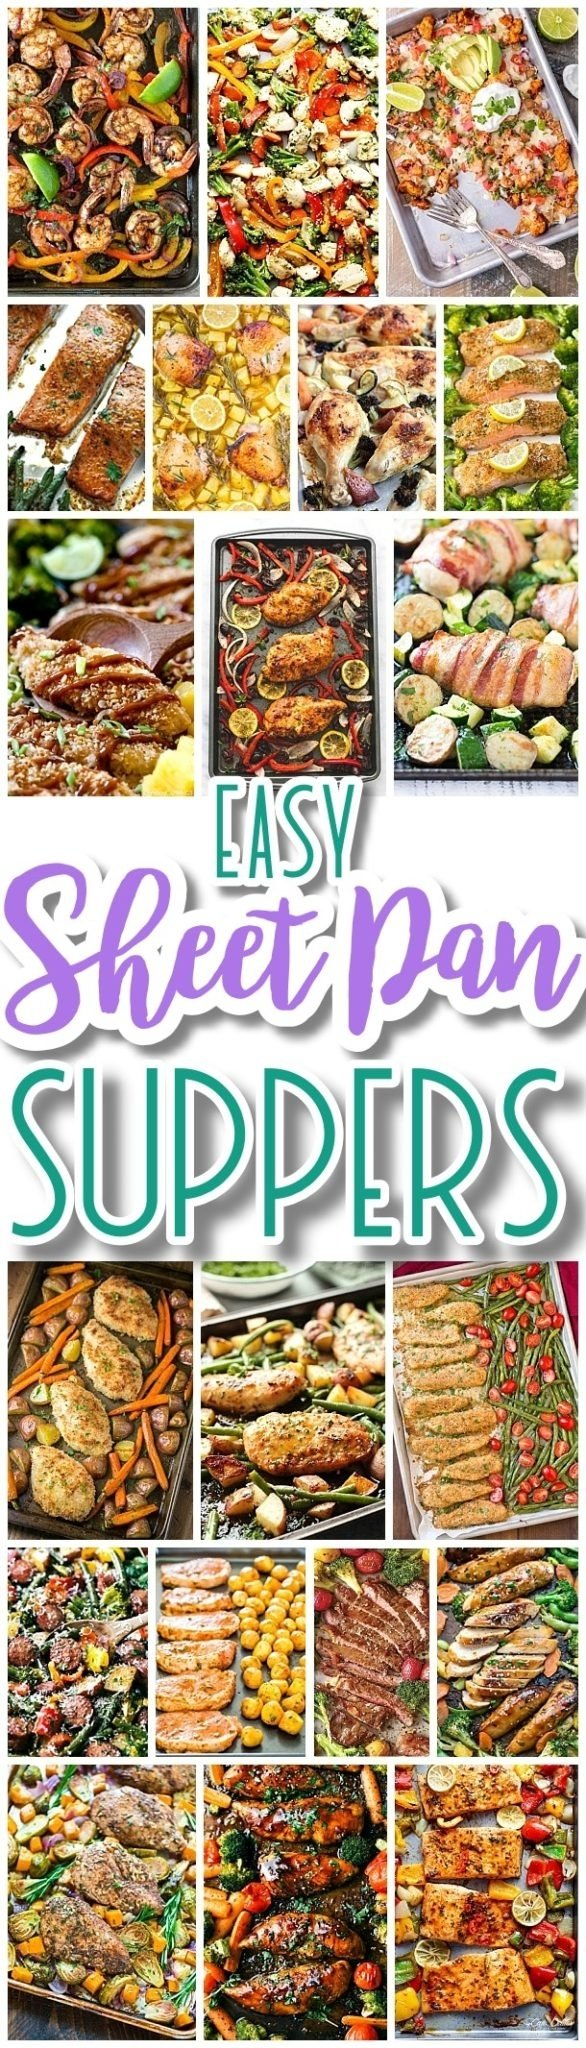 10 Stunning Simple Dinner Ideas For Family the best sheet pan suppers recipes easy and quick baked family 2020